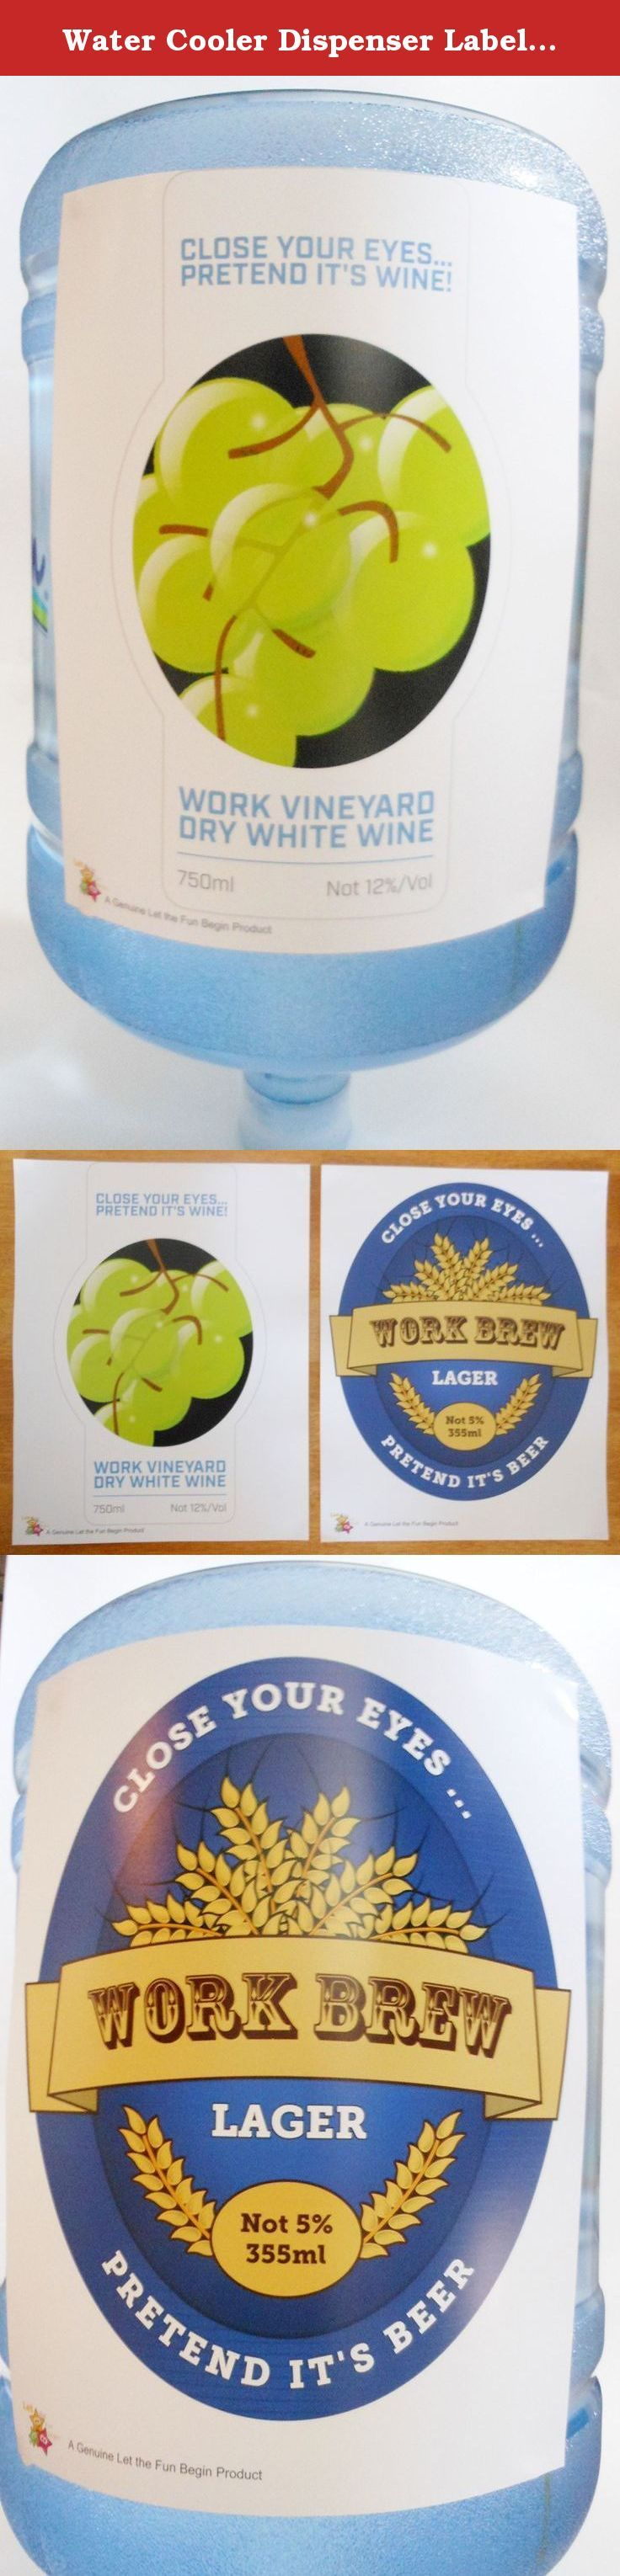 Water Cooler Dispenser Label - 2 Pack - Funny Office Joke / Gag - Close Your Eyes and Pretend It's Beer. Your water dispenser will be the hit of the office with these fun and funny bottle decorations. Watch as everyone pretends they are drinking beer or wine. Add some light-hearted humour to your office today! Each set comes with 2 posters- one for beer and one for wine!.